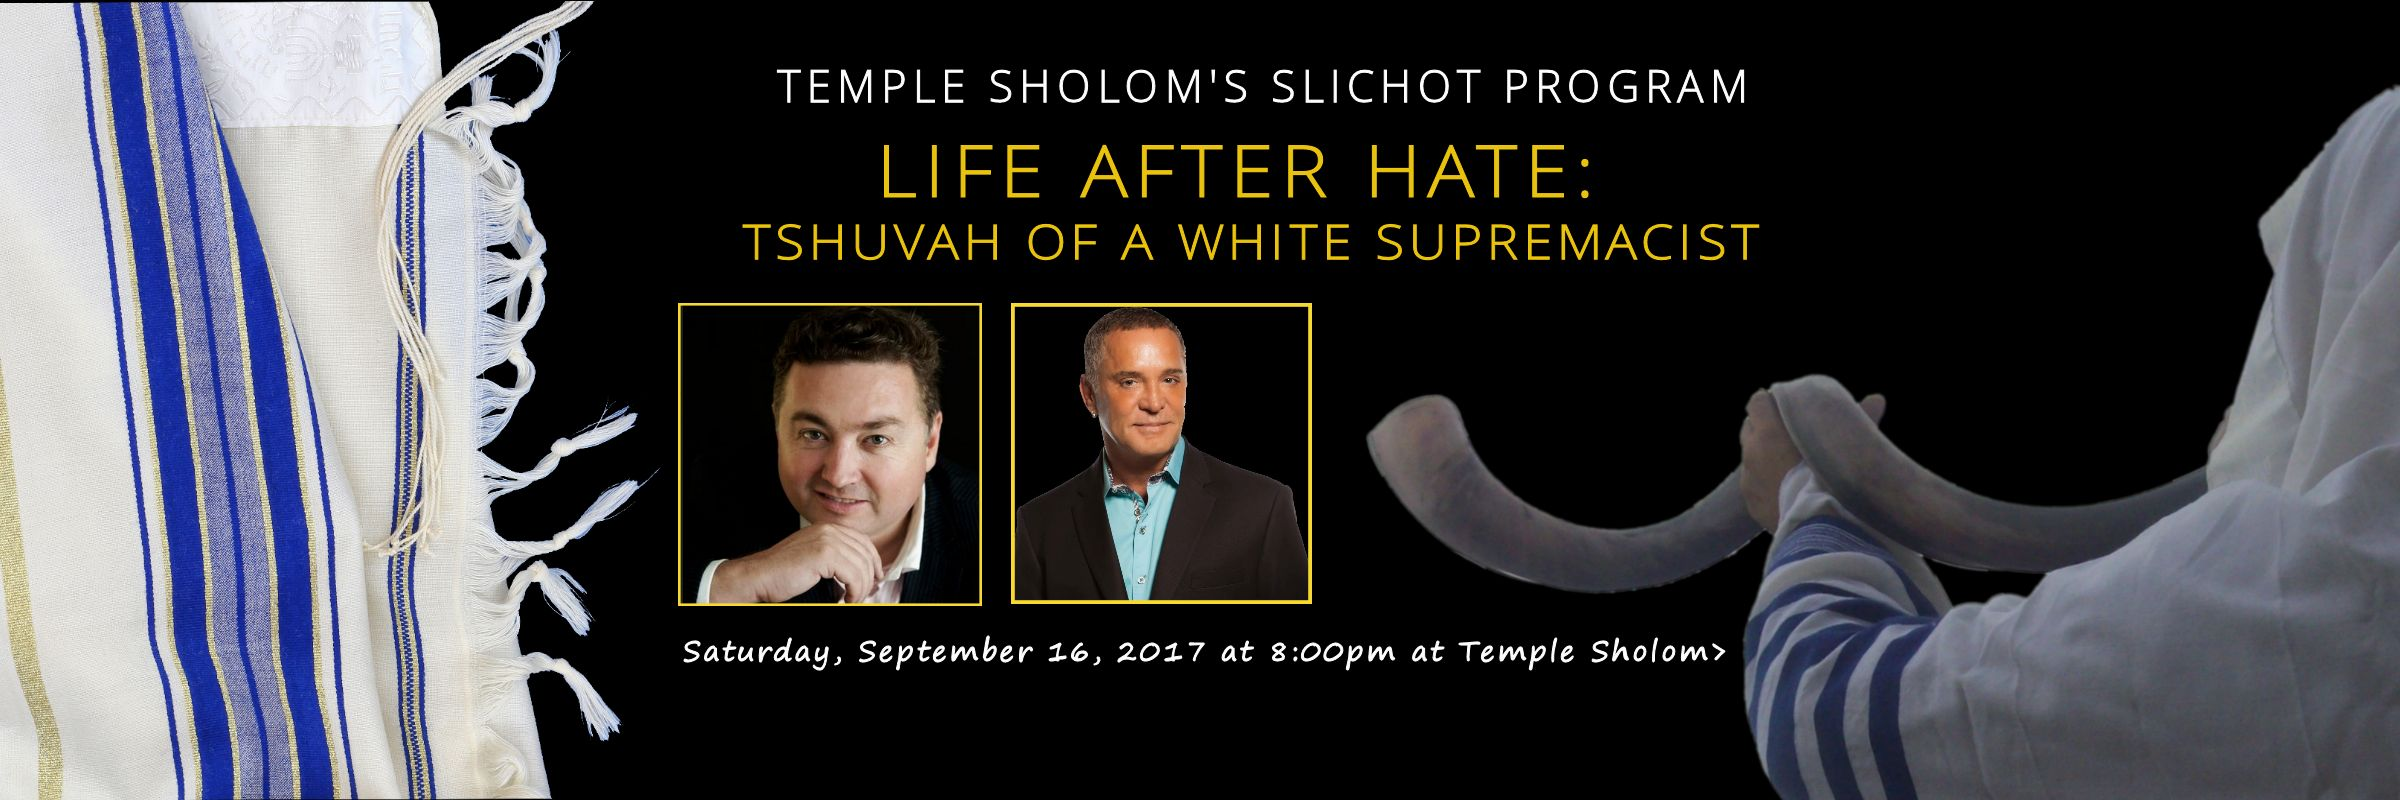 Life After Hate: Tshuvah of A White Supremacist